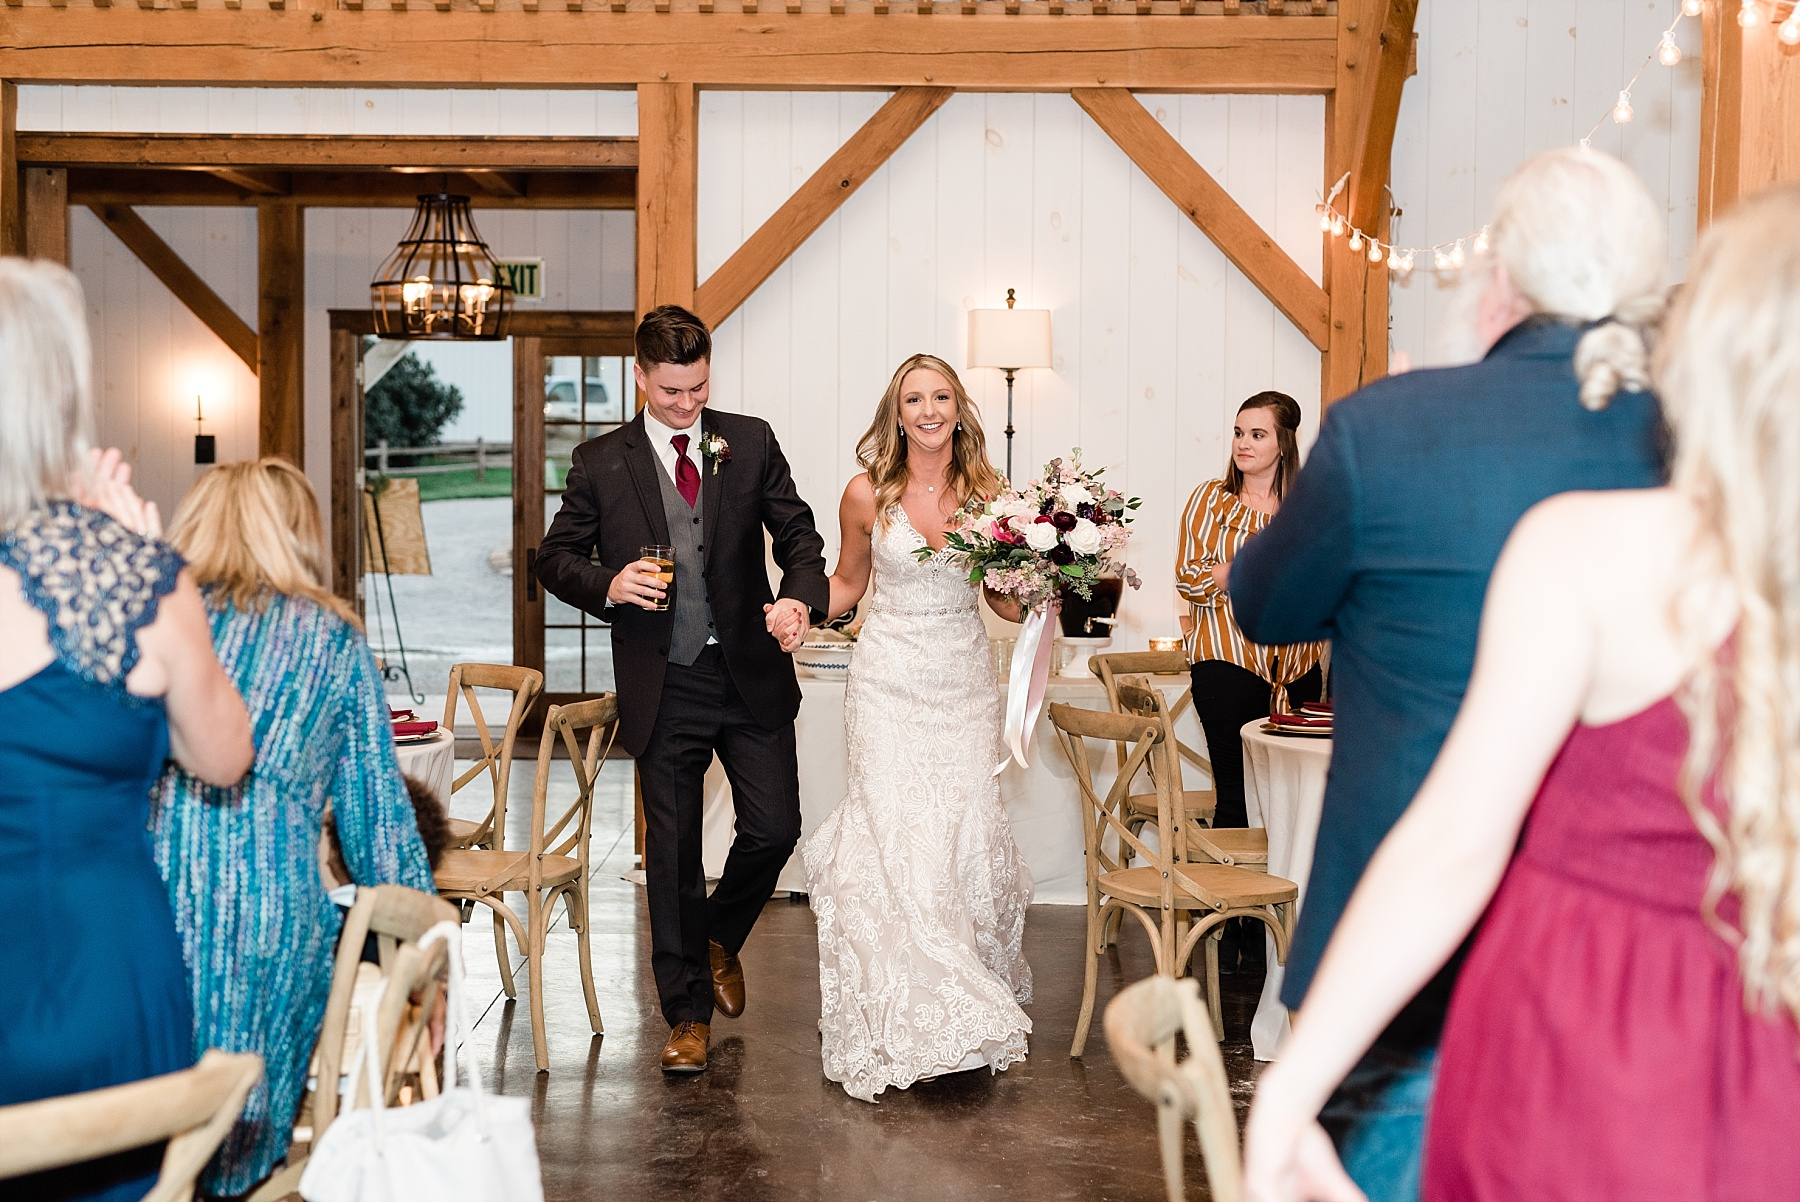 Golden Autumn Outdoor Wedding with Ivory, Bergundy, and Blush Color Palette at Blue Bell Farms  by Kelsi Kliethermes Photography_0037.jpg